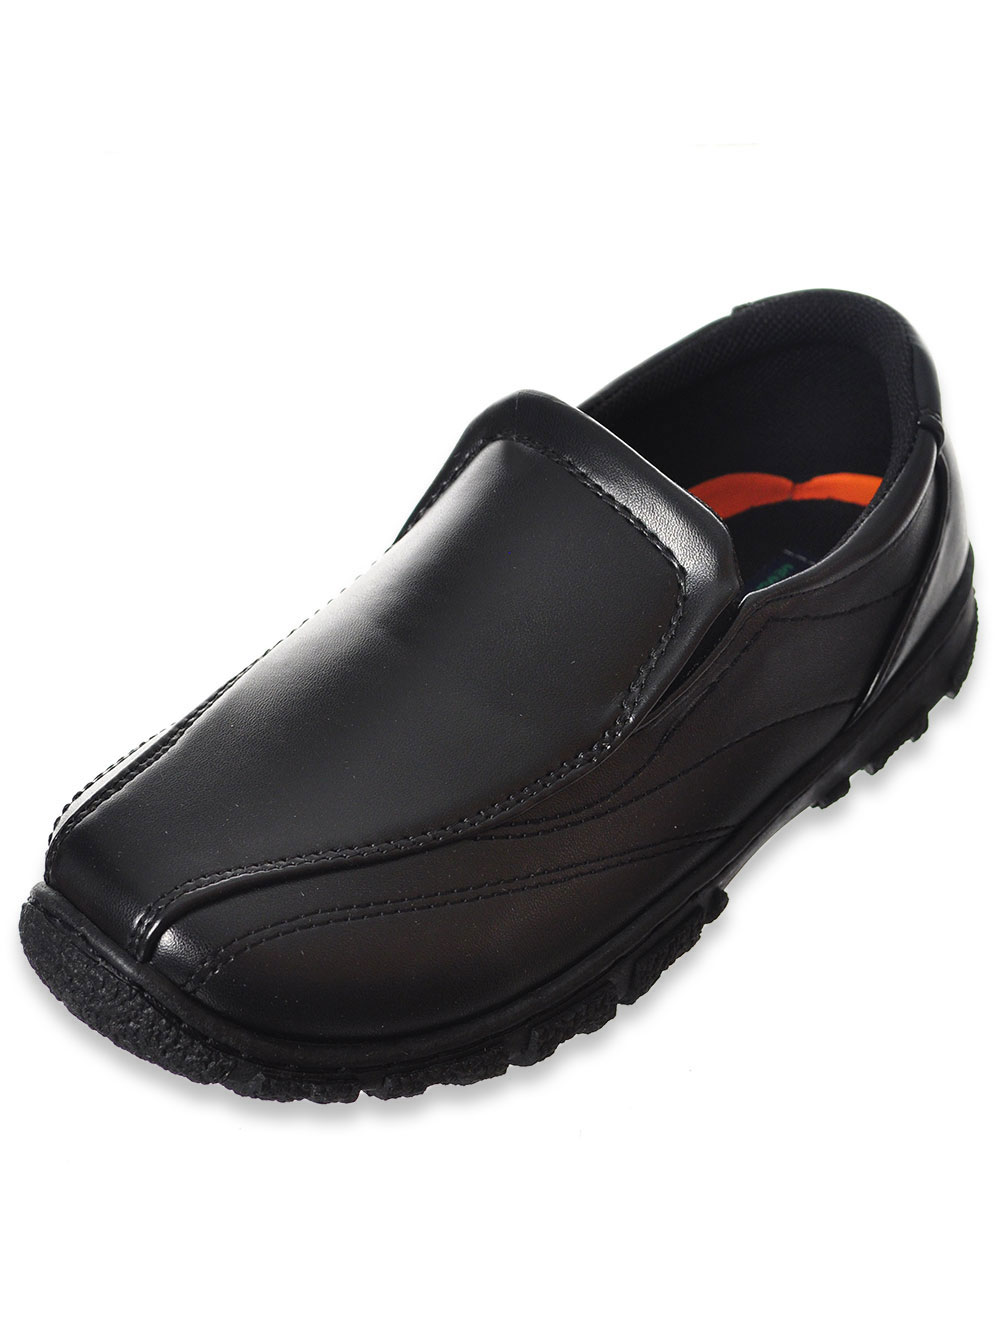 Shoes Slip-On School